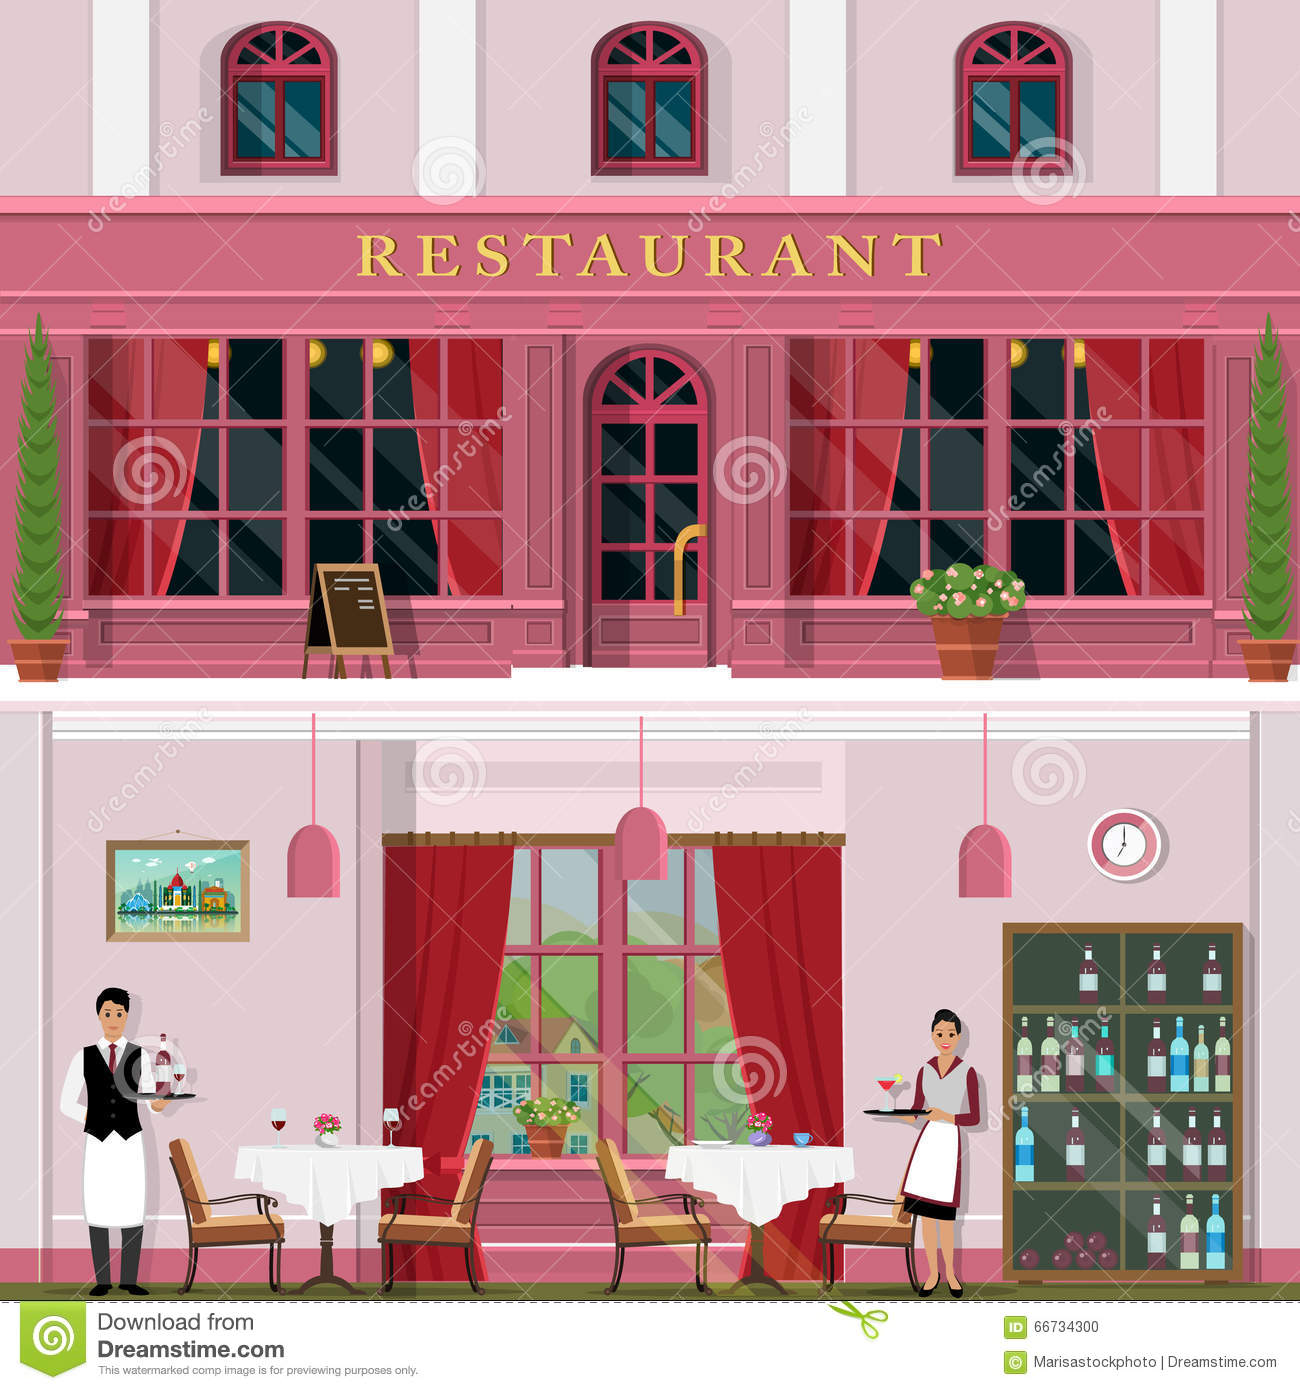 Set of vector detailed flat design restaurant facade and